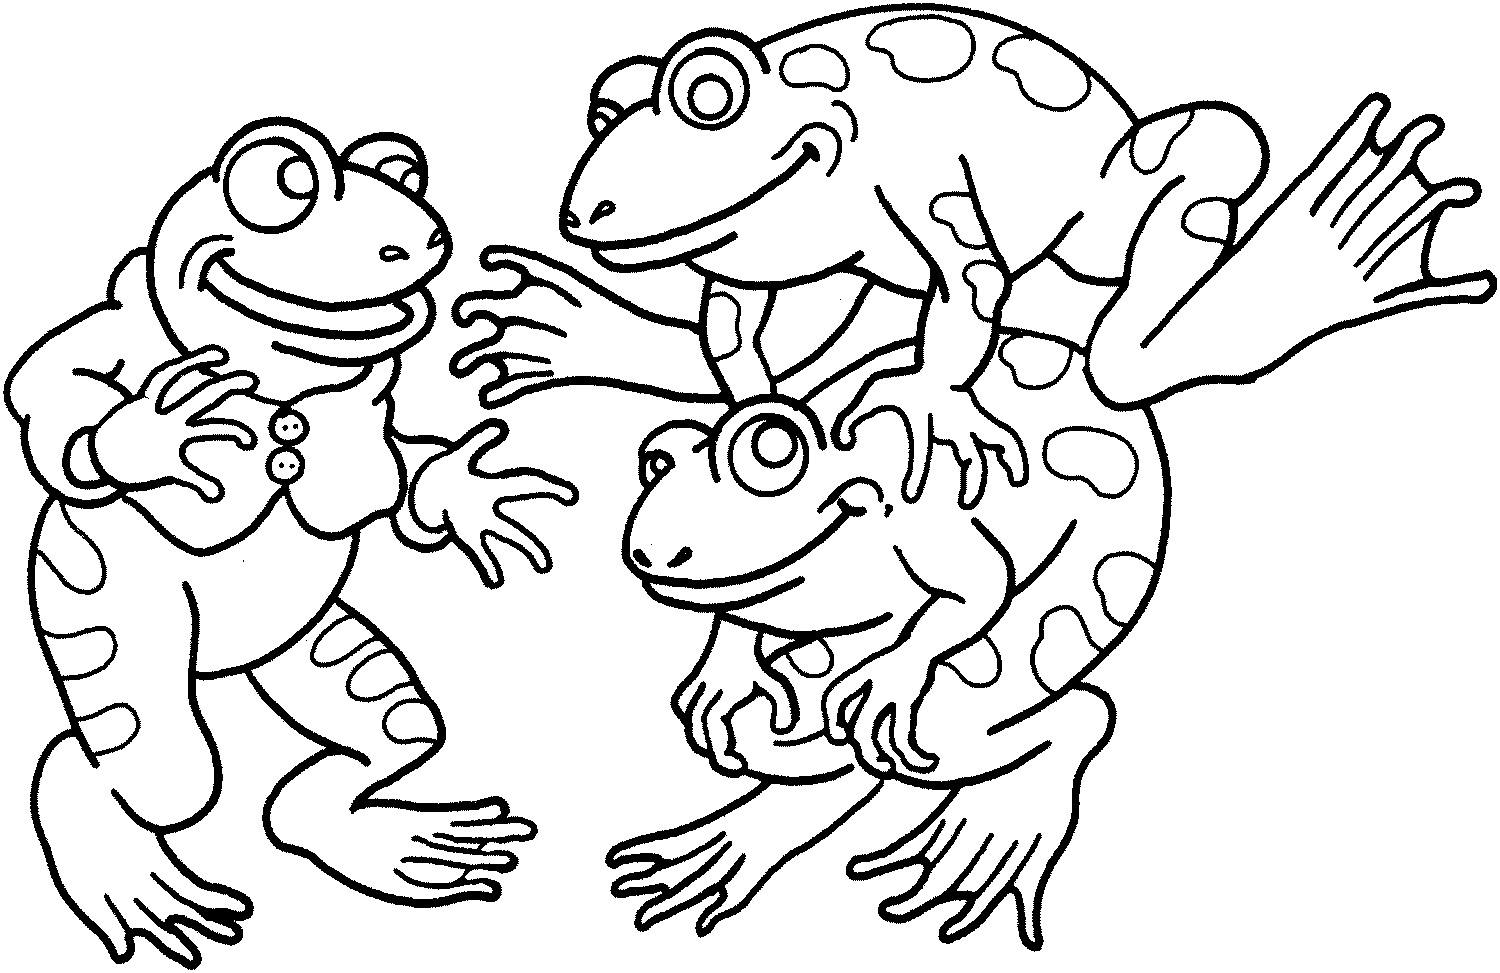 pictures of frogs to color free outline of a frog download free clip art free clip color to of pictures frogs